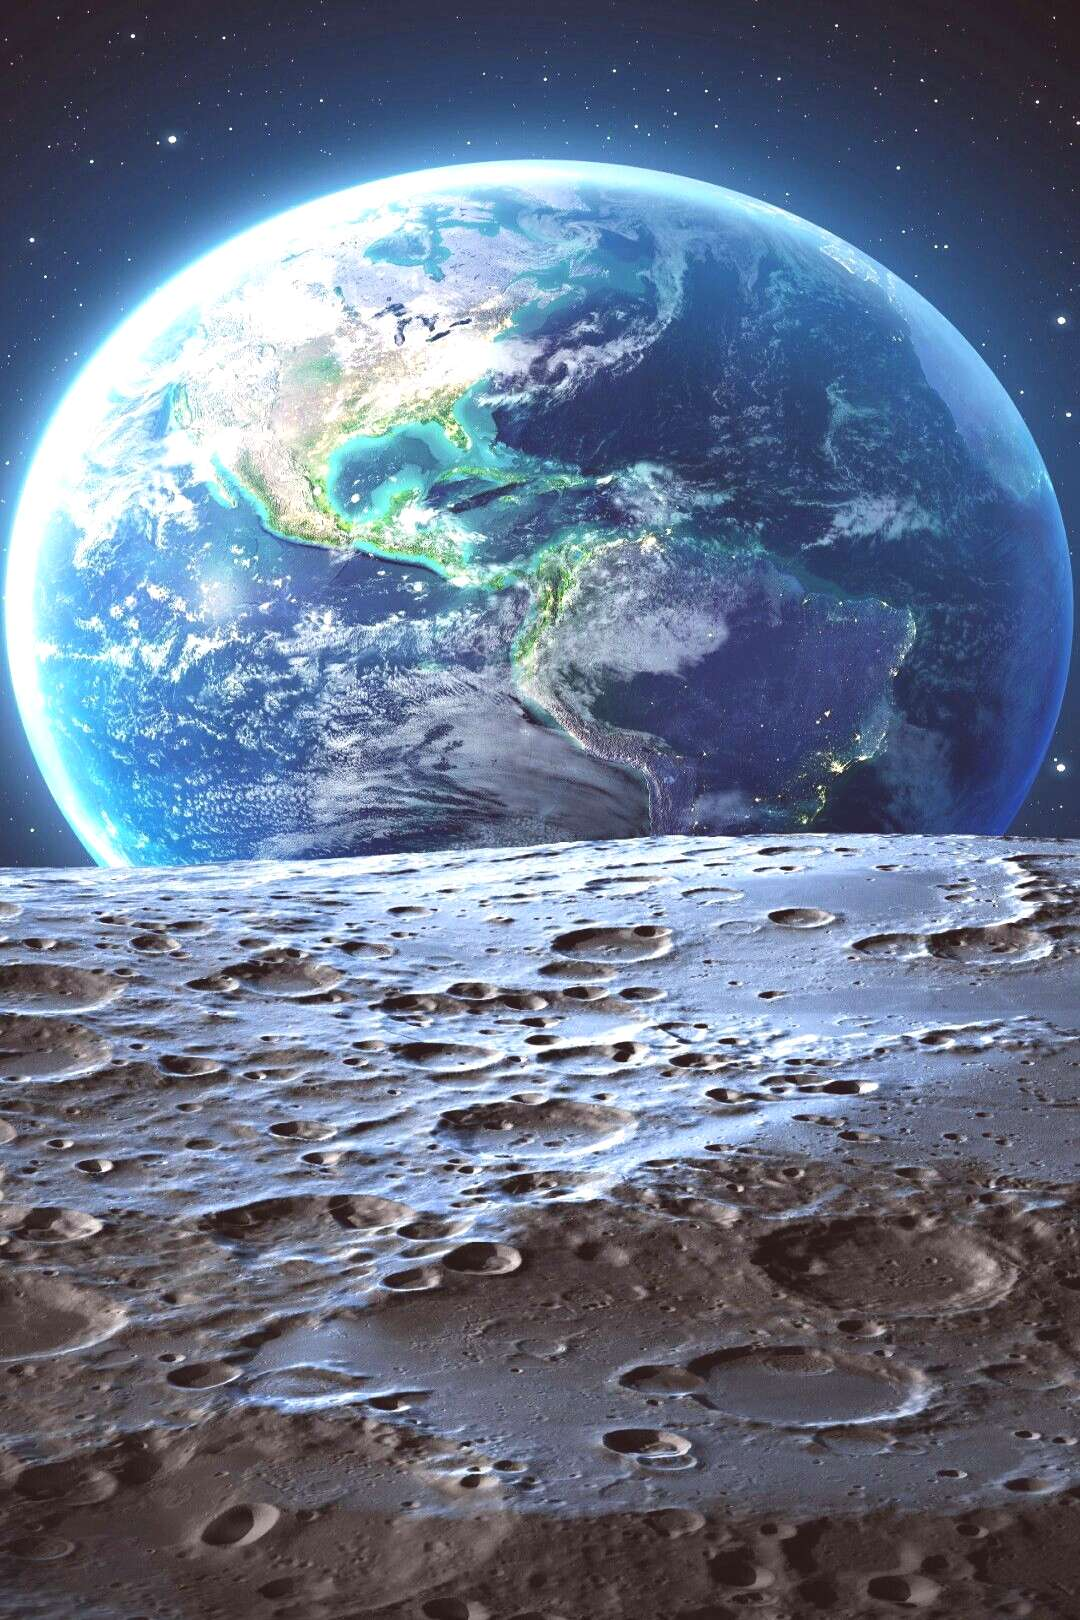 Magic Look at Planet Earth wallpaper Backgrounds